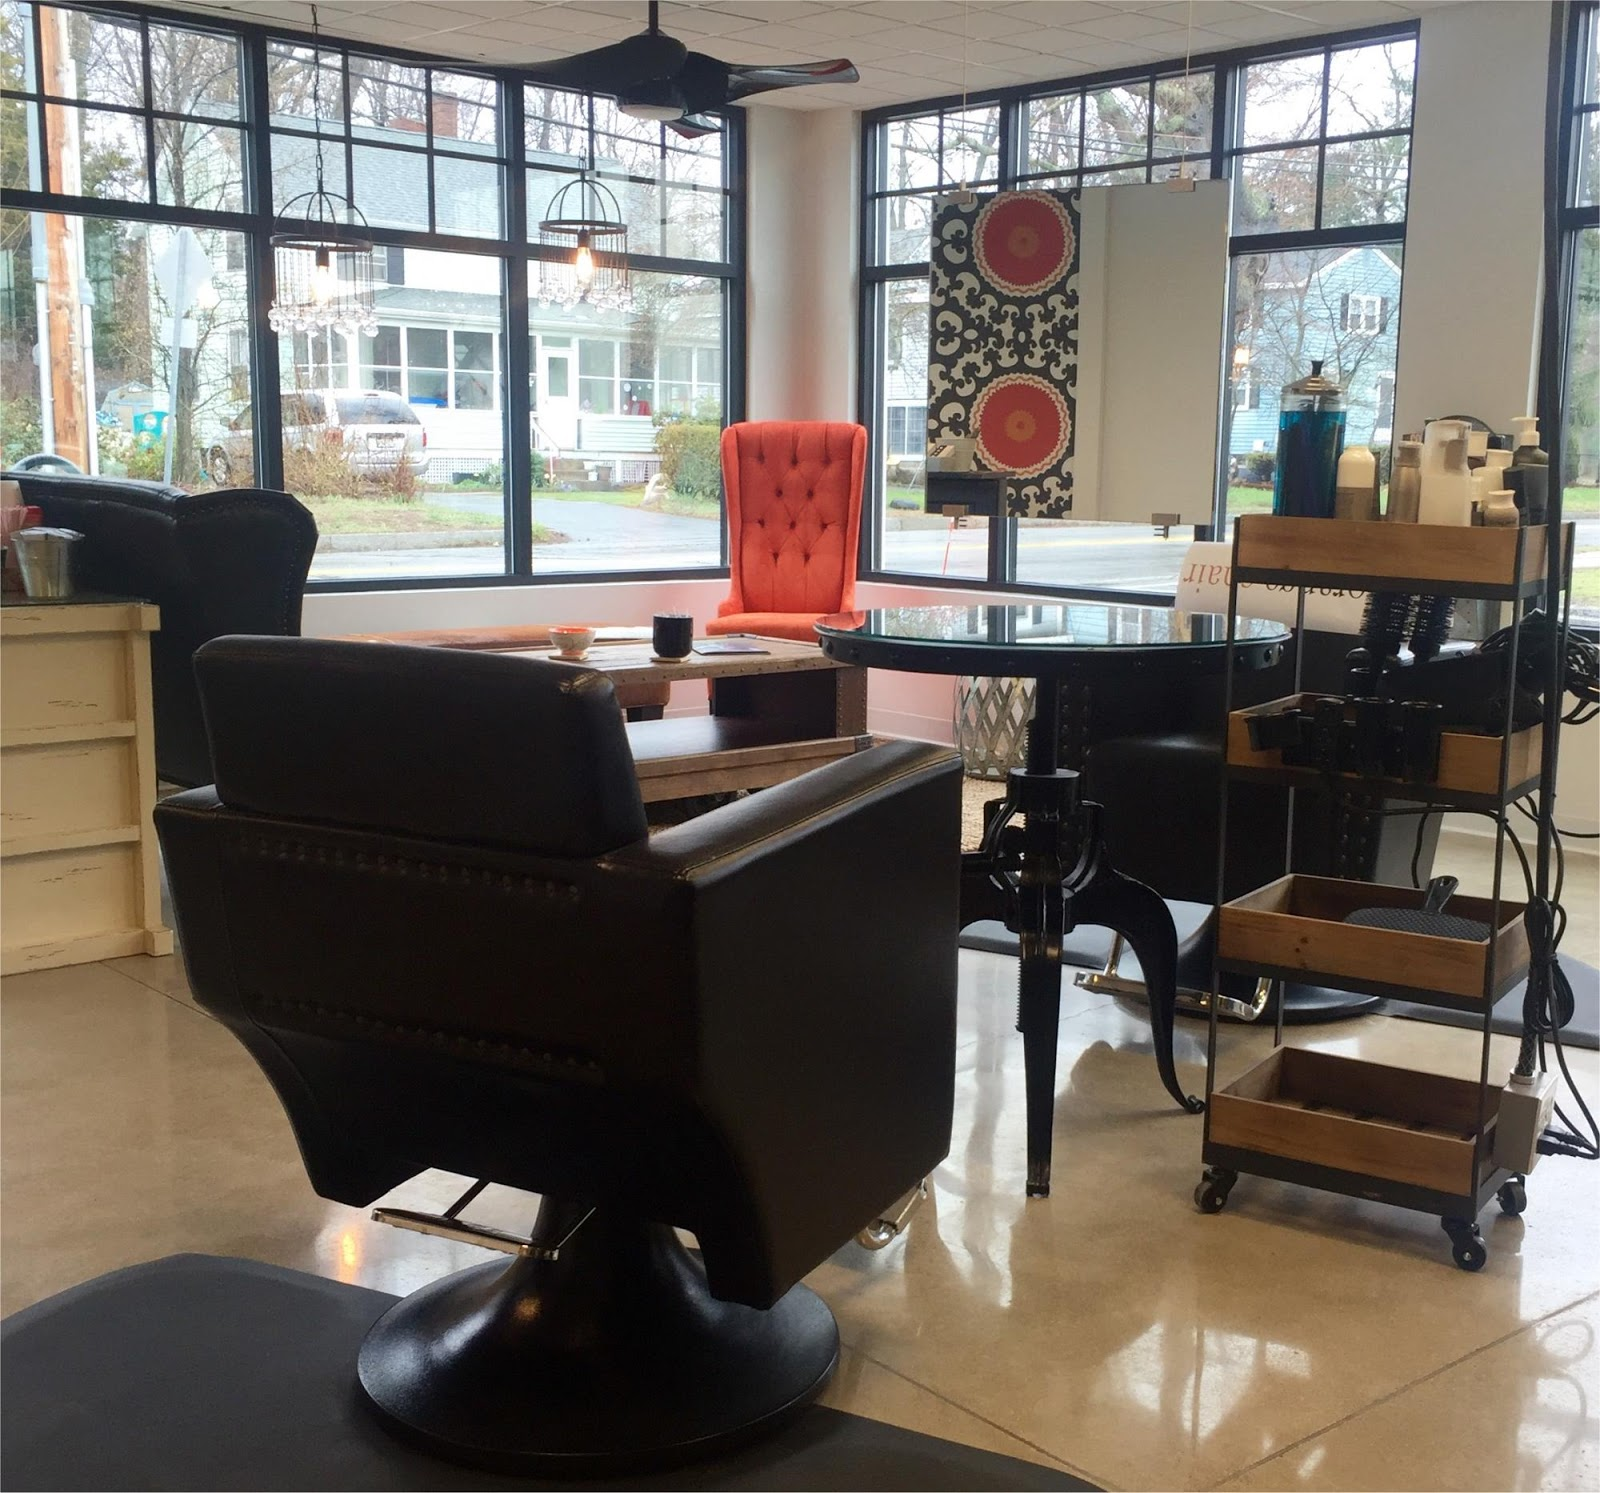 Orange Chair Salon Target Upholstered Bedford Mass What S New In Retail The Moves To Crossing